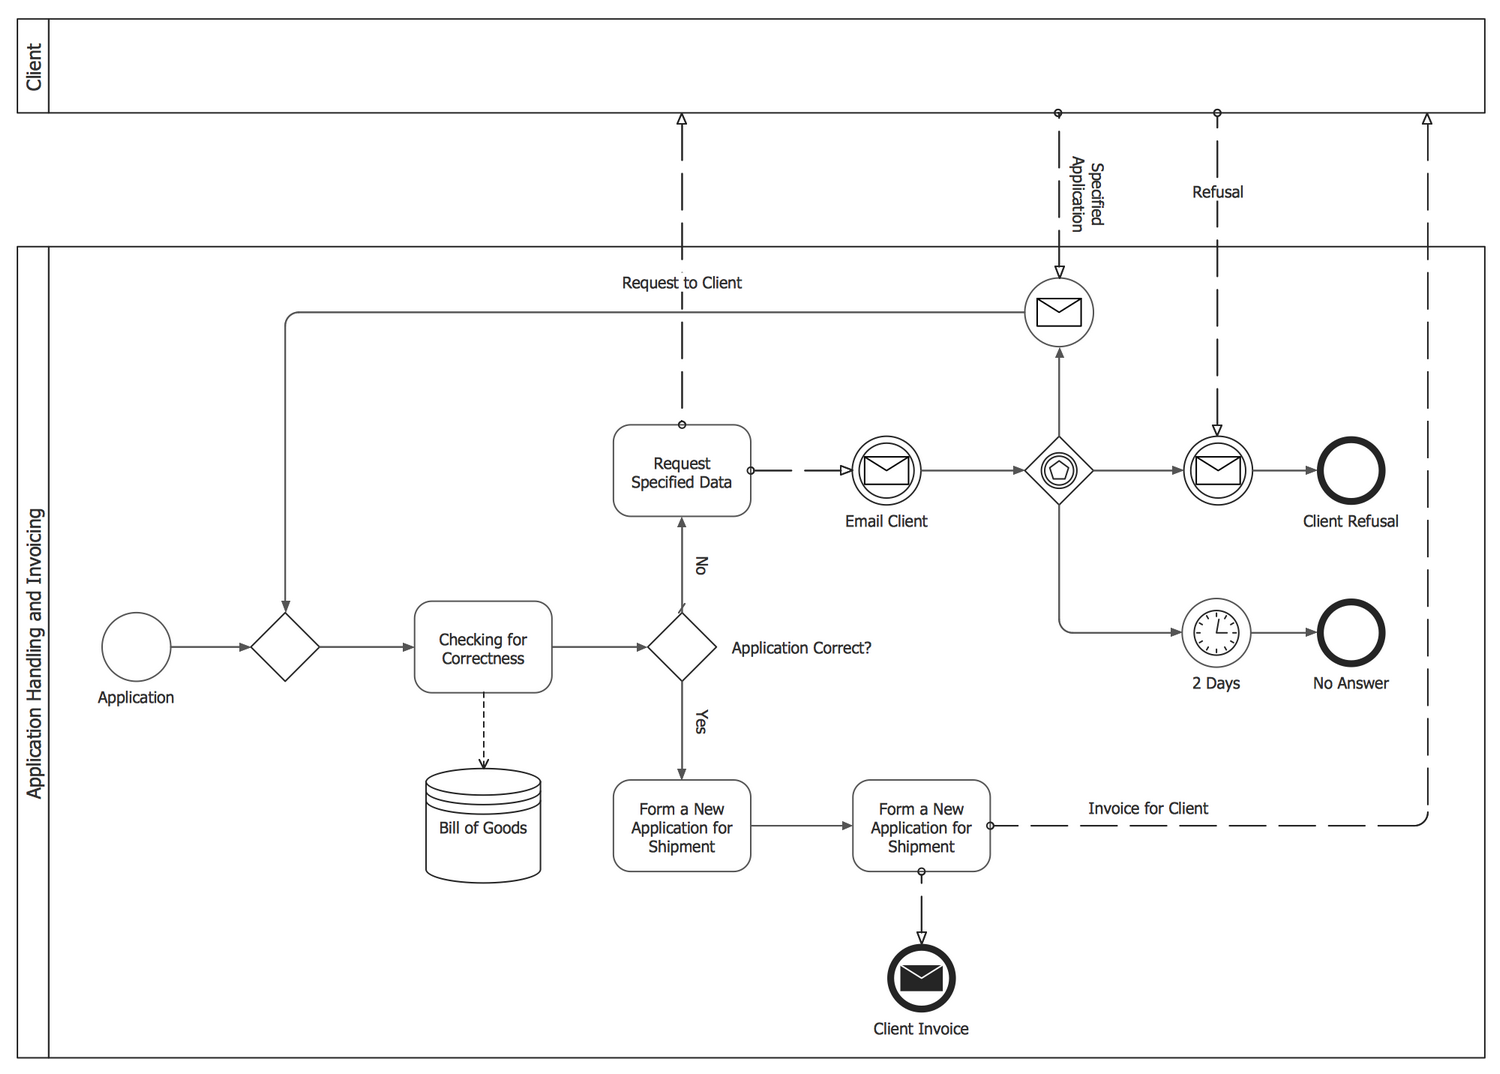 Application Handling and Invoicing — Collaboration BPMN 2.0 Diagram